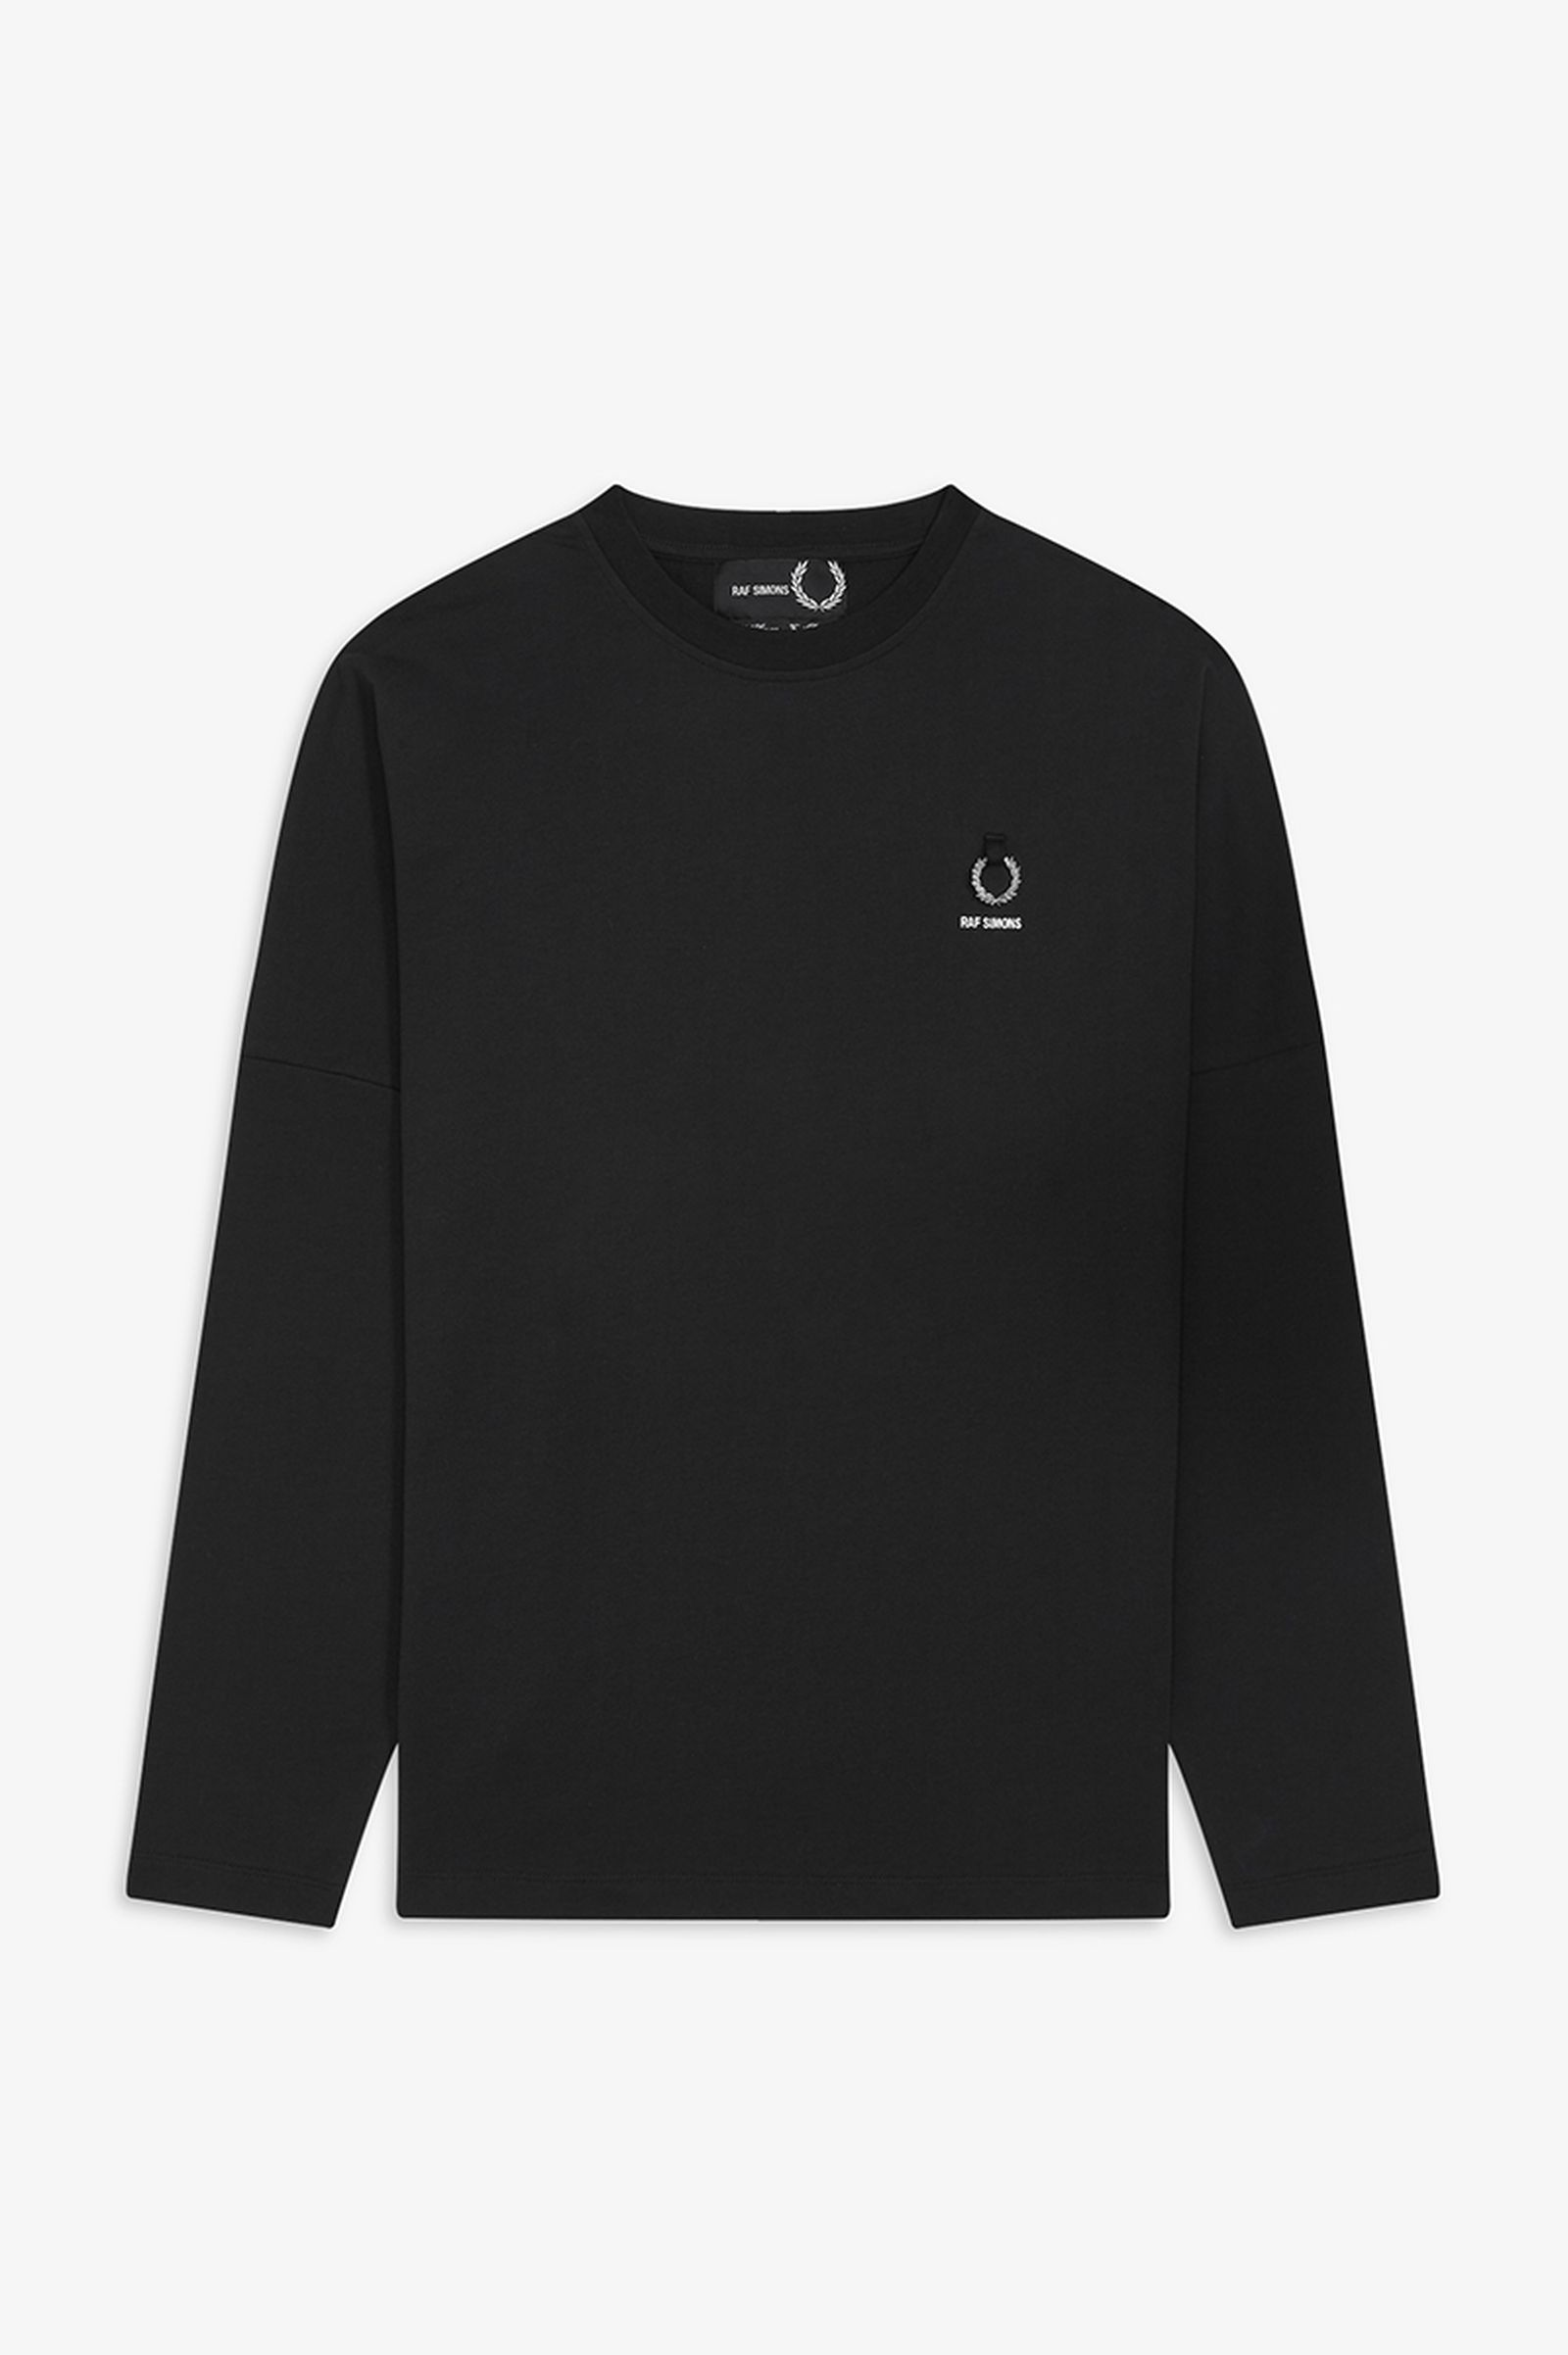 raf simons fred perry august 2019